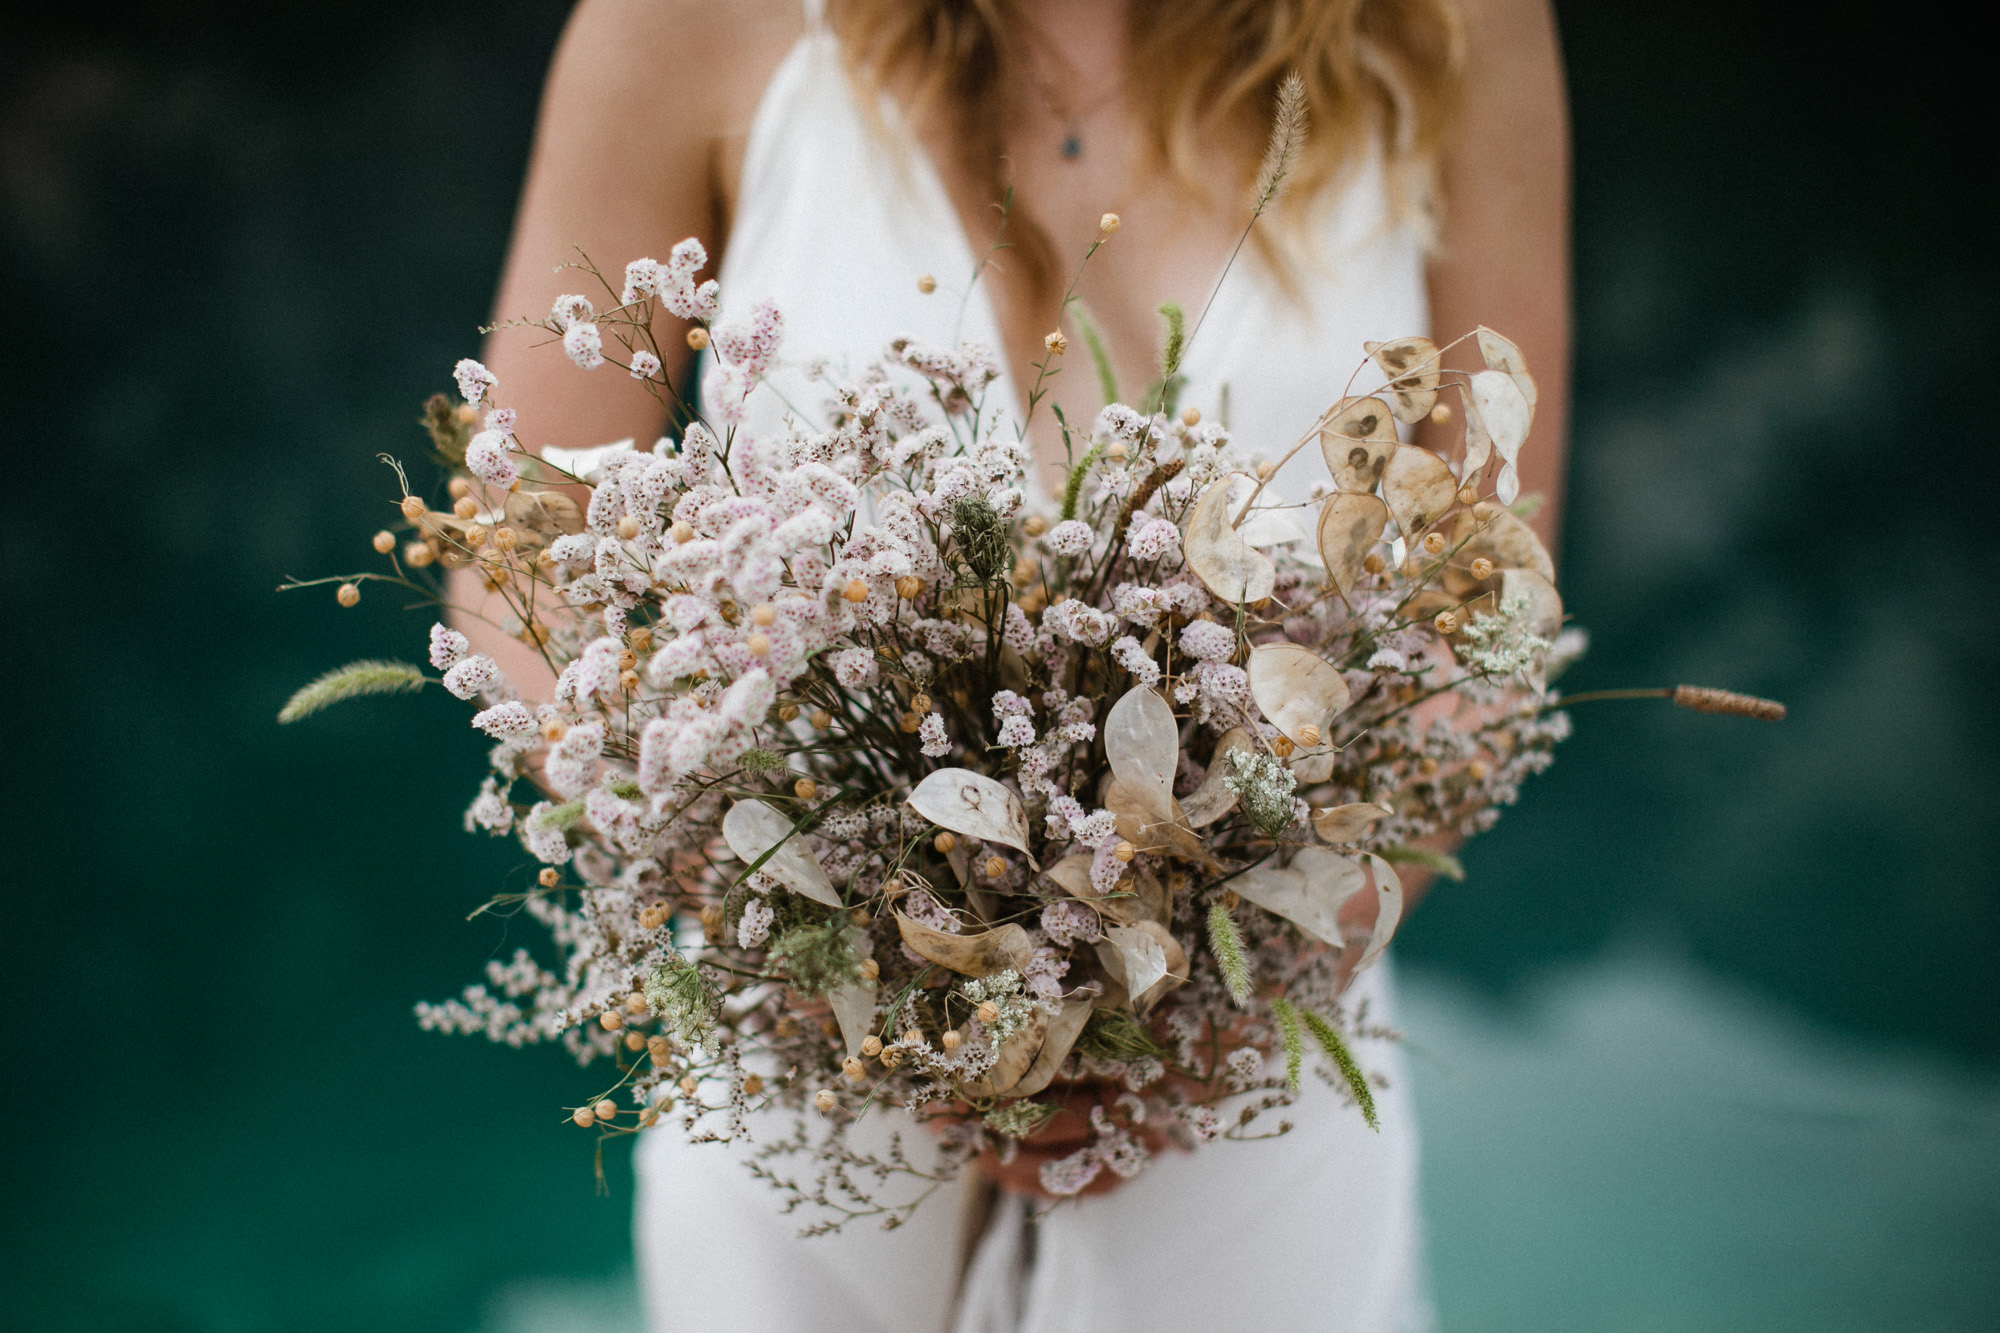 Bride holding dried bouquet at Lago di Braies in the Dolomites in Italy during elopement wedding Ana Galloway Photography